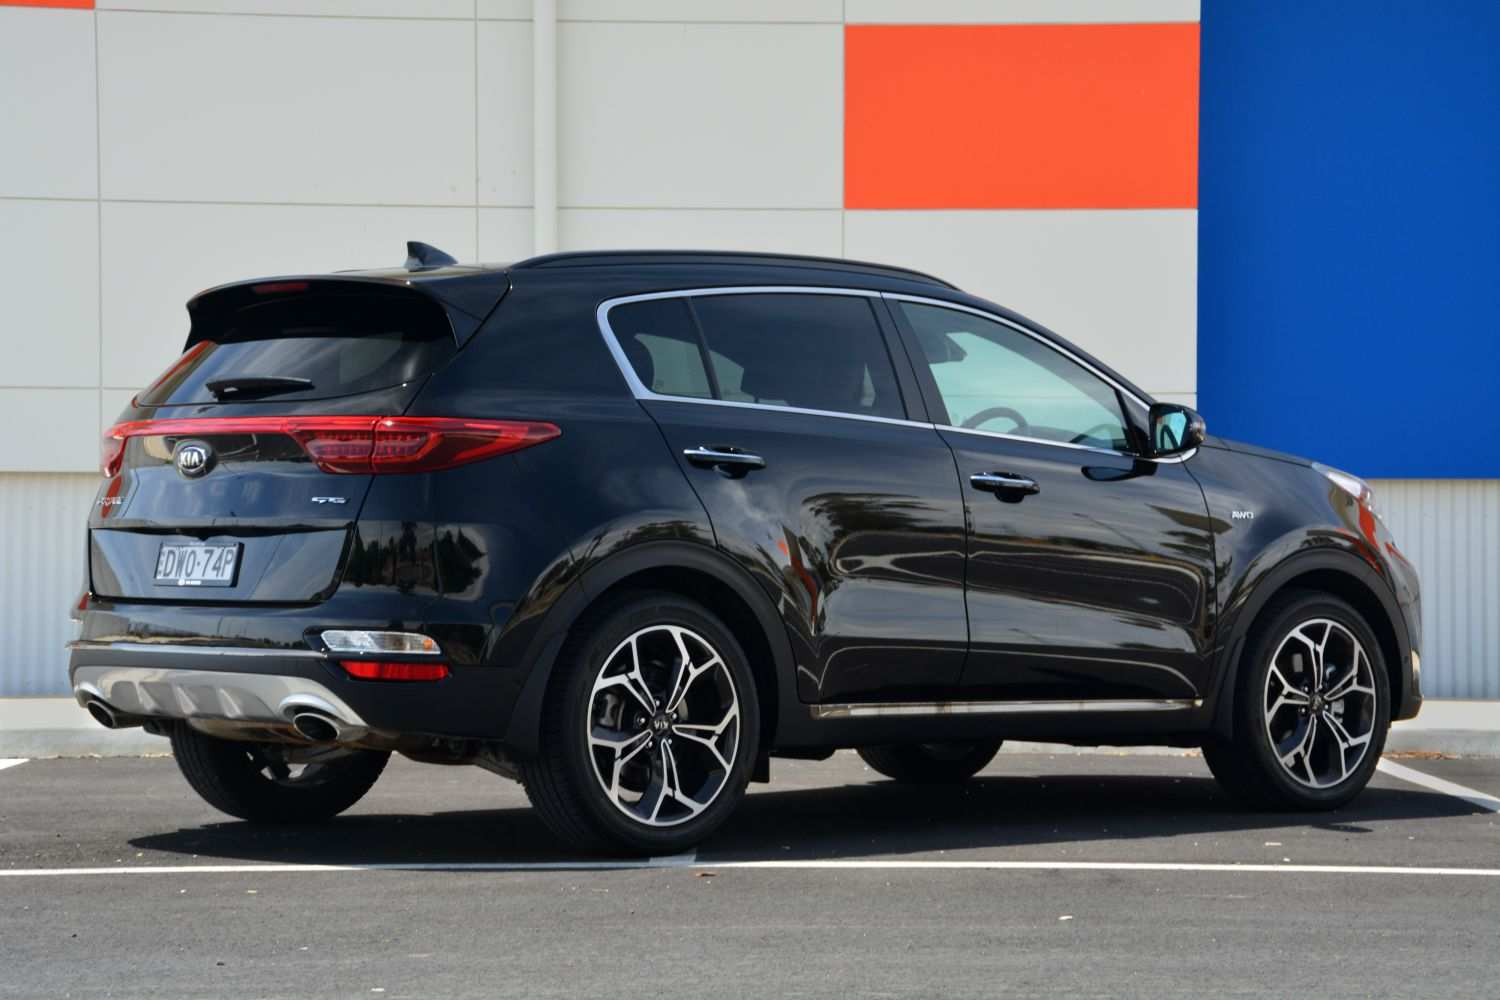 83 The The Kia Sportage Gt Line 2019 Review And Specs Review with The Kia Sportage Gt Line 2019 Review And Specs